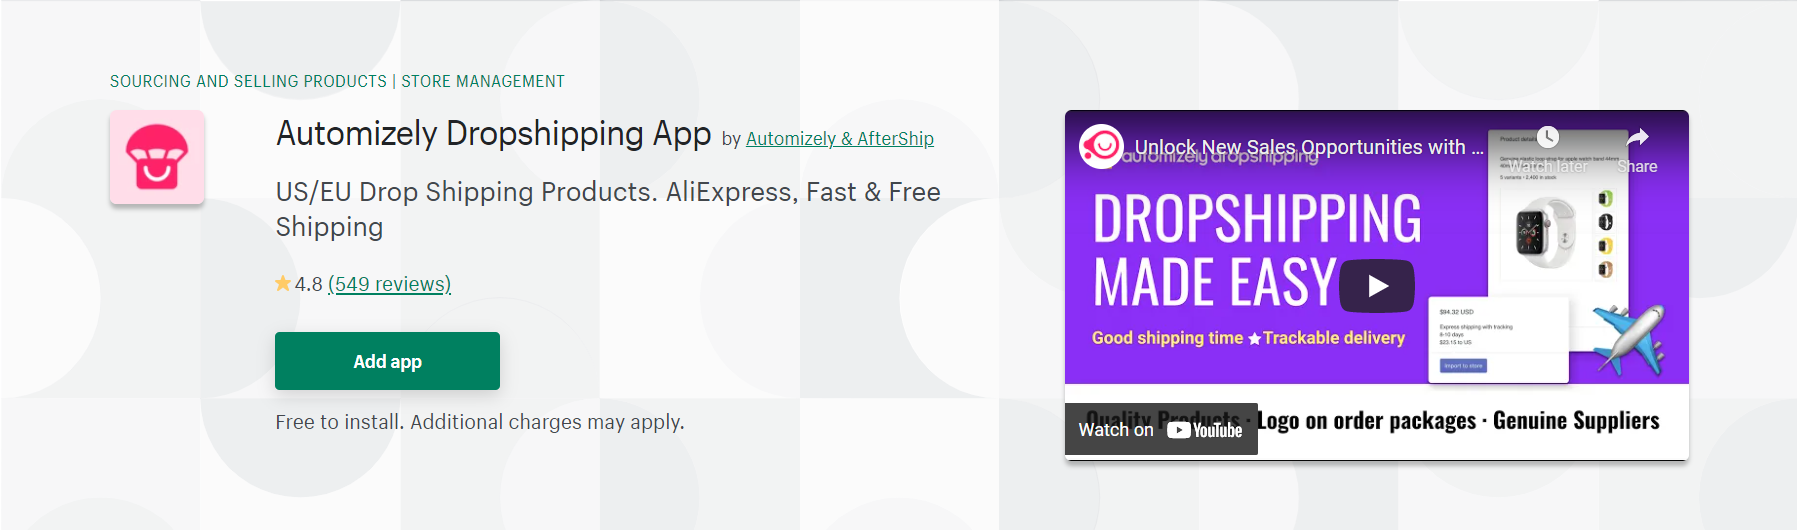 automizely dropshipping app